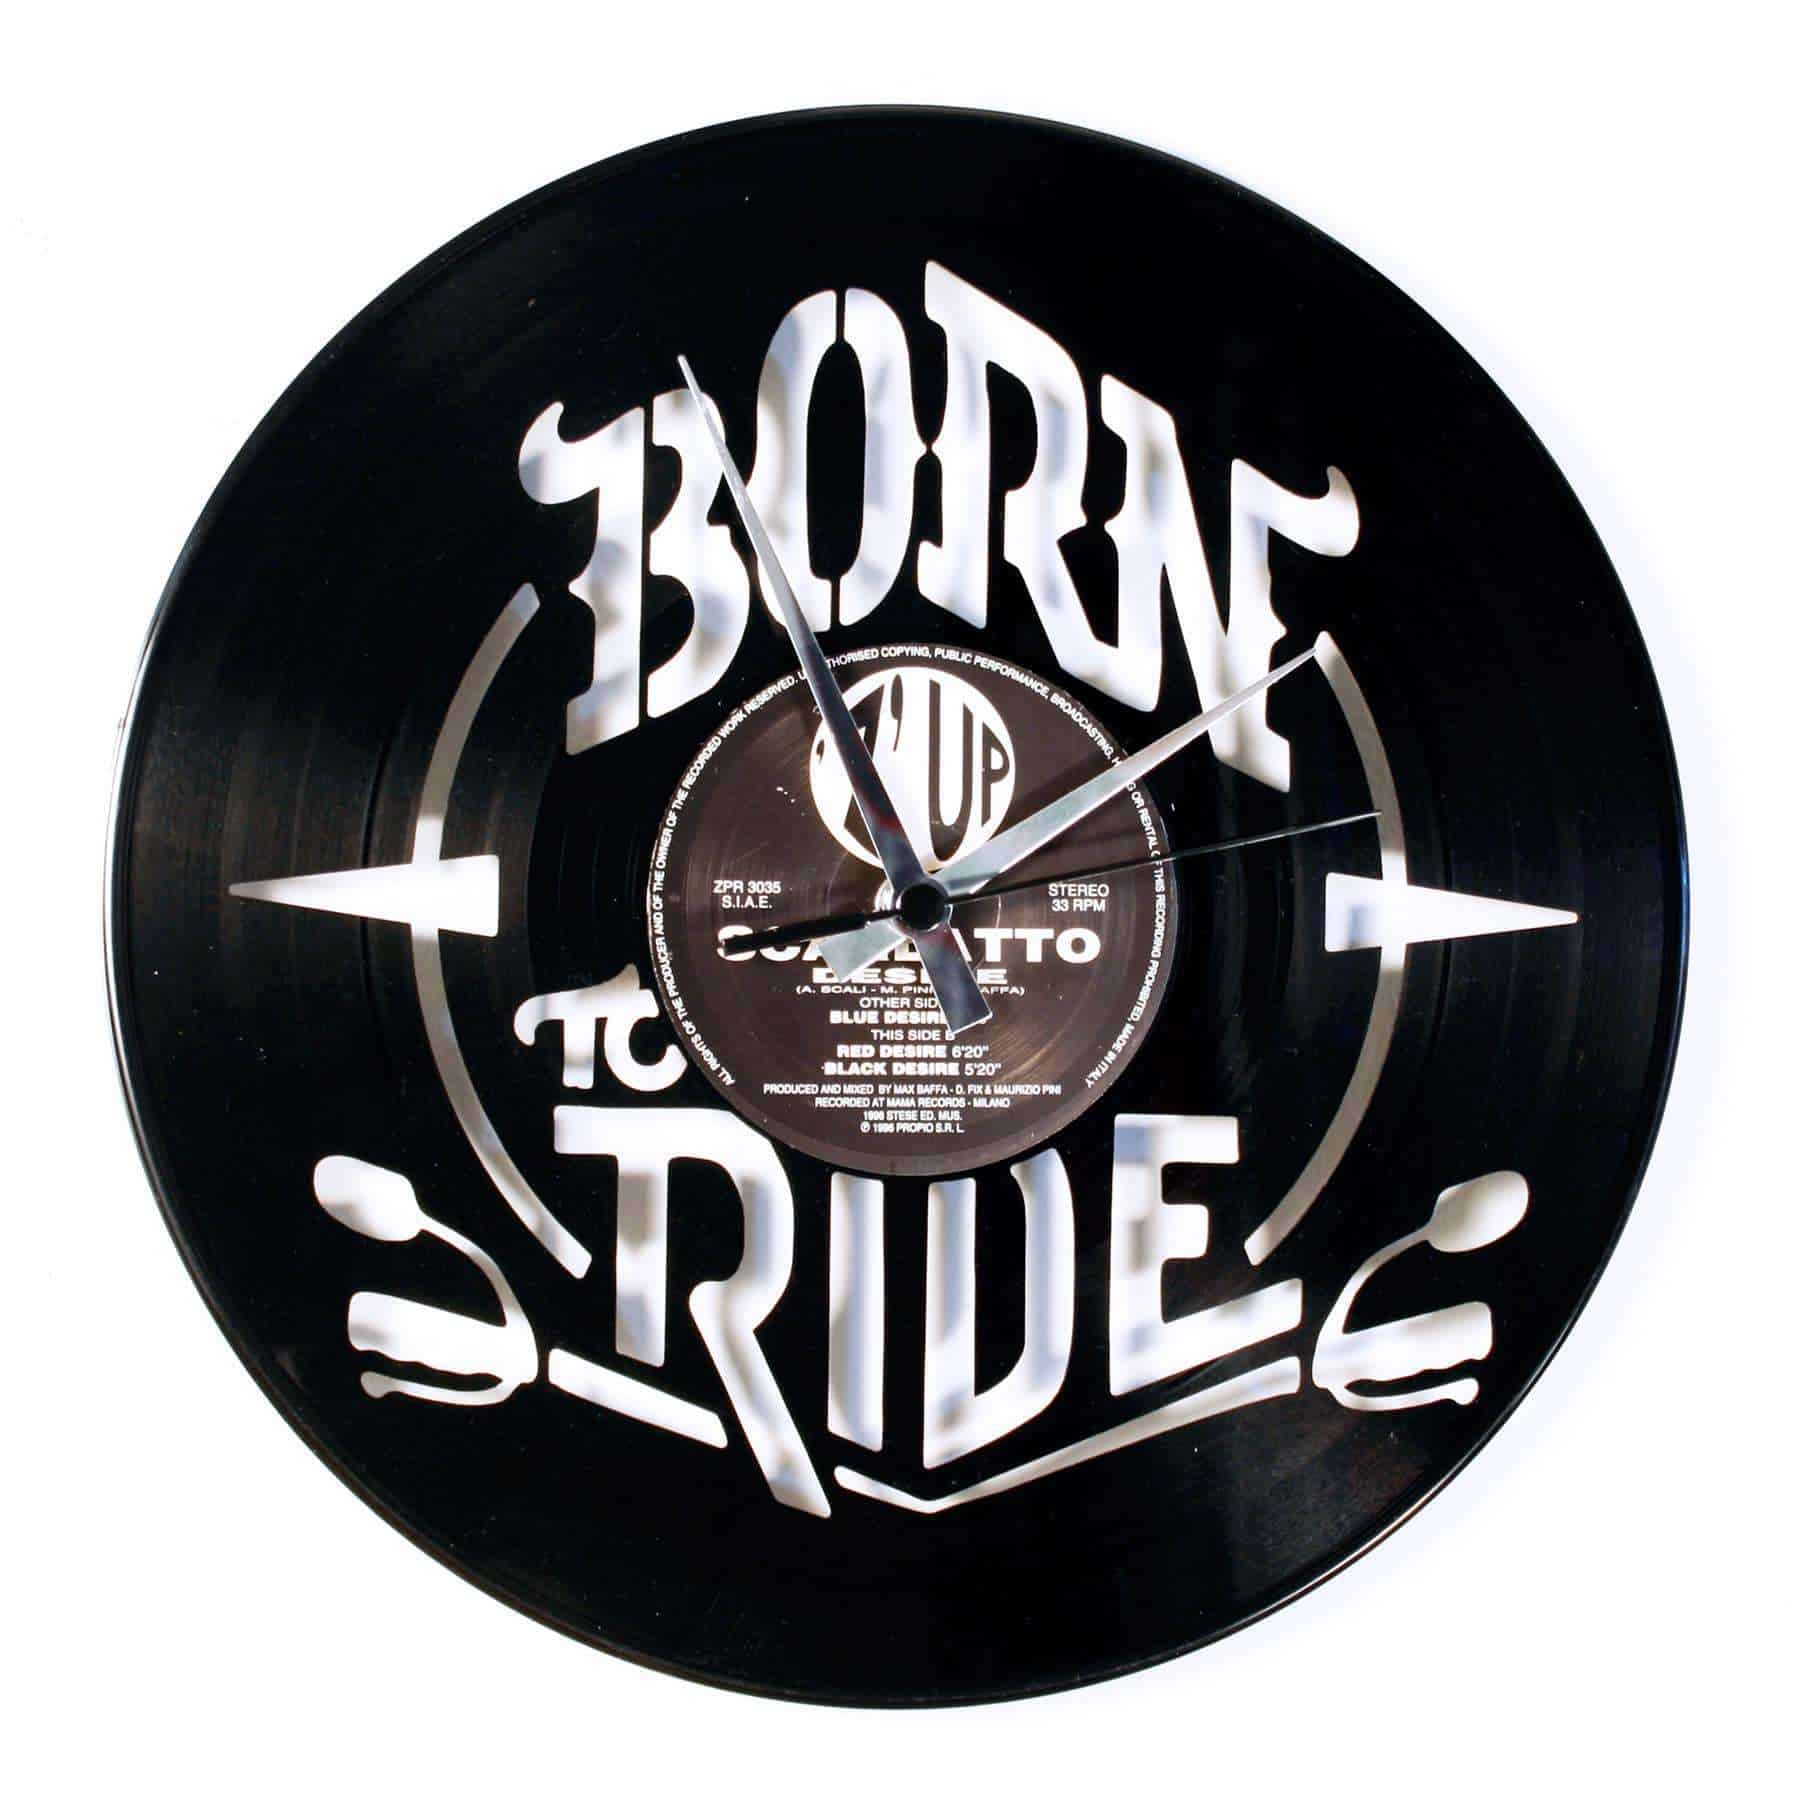 born to ride record clock